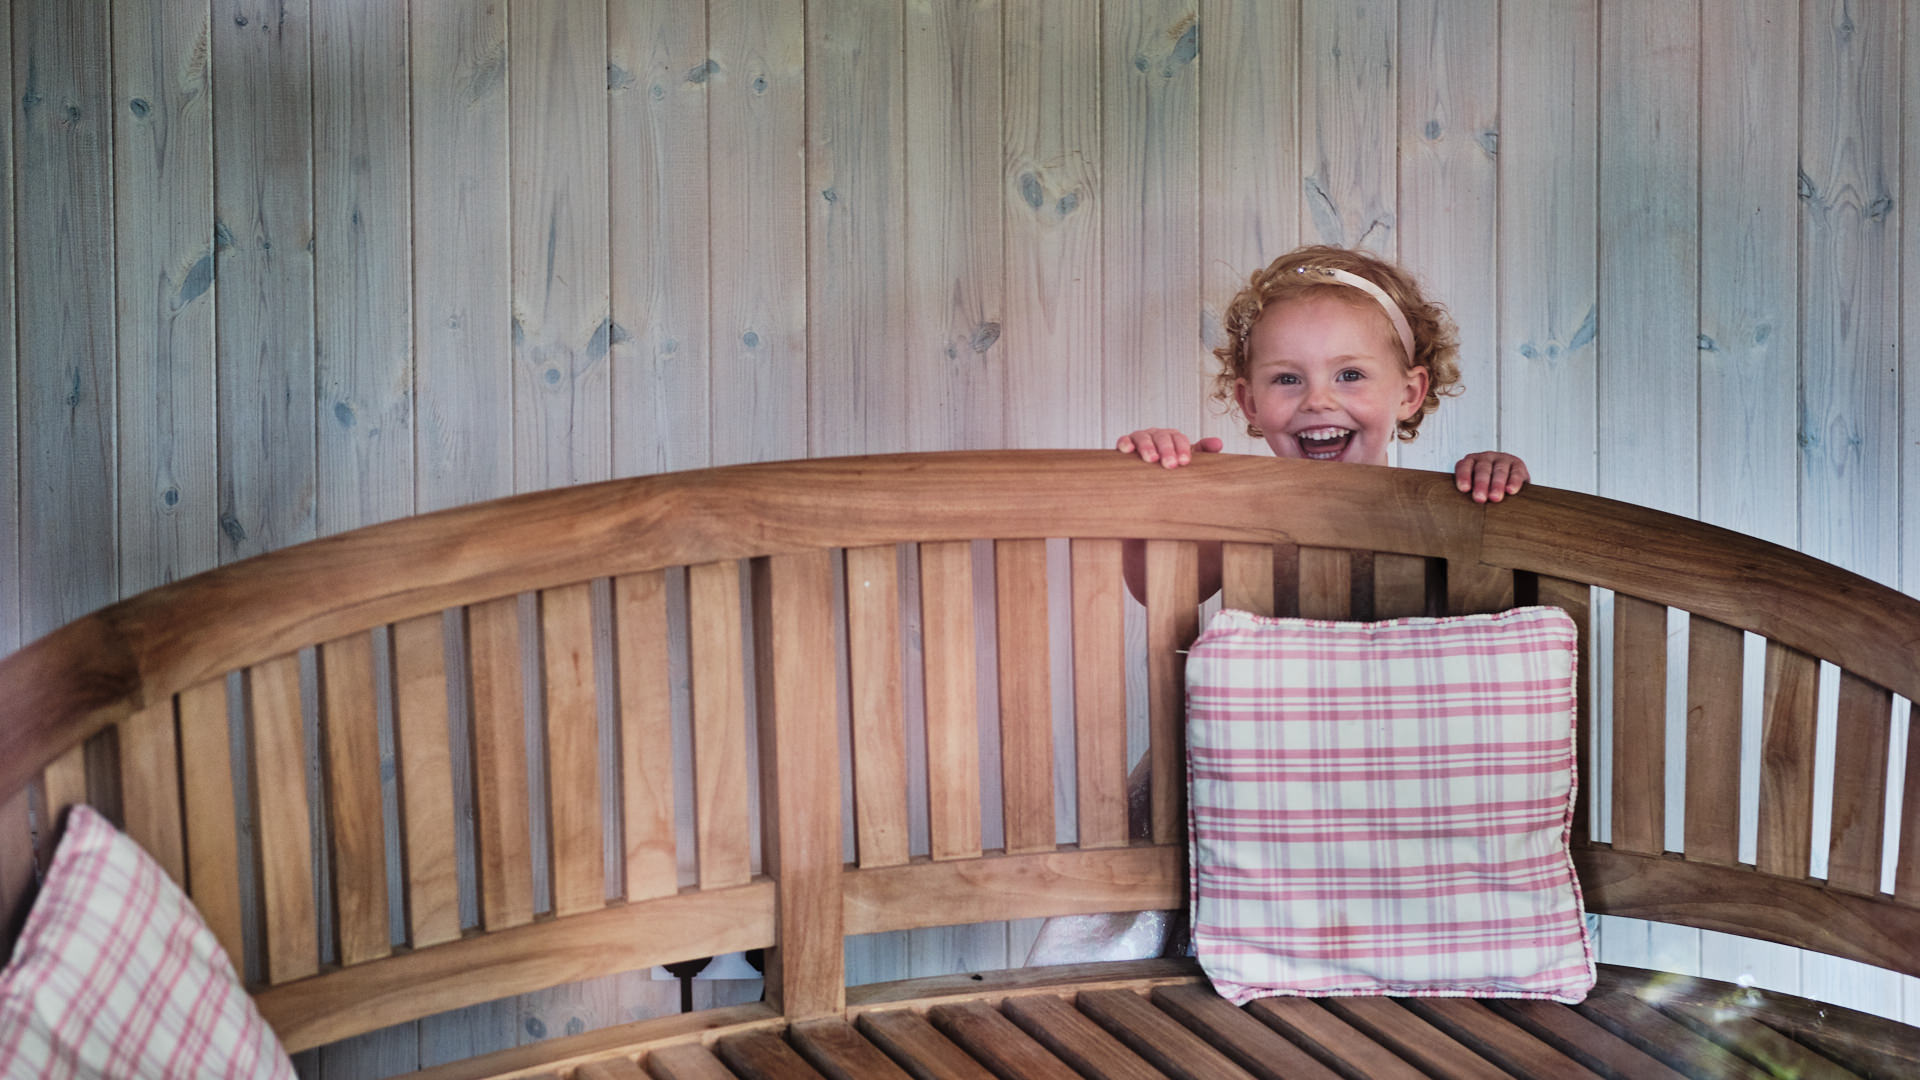 colour photograph of a small girl hiding behind a wooden bench and playing peekaboo